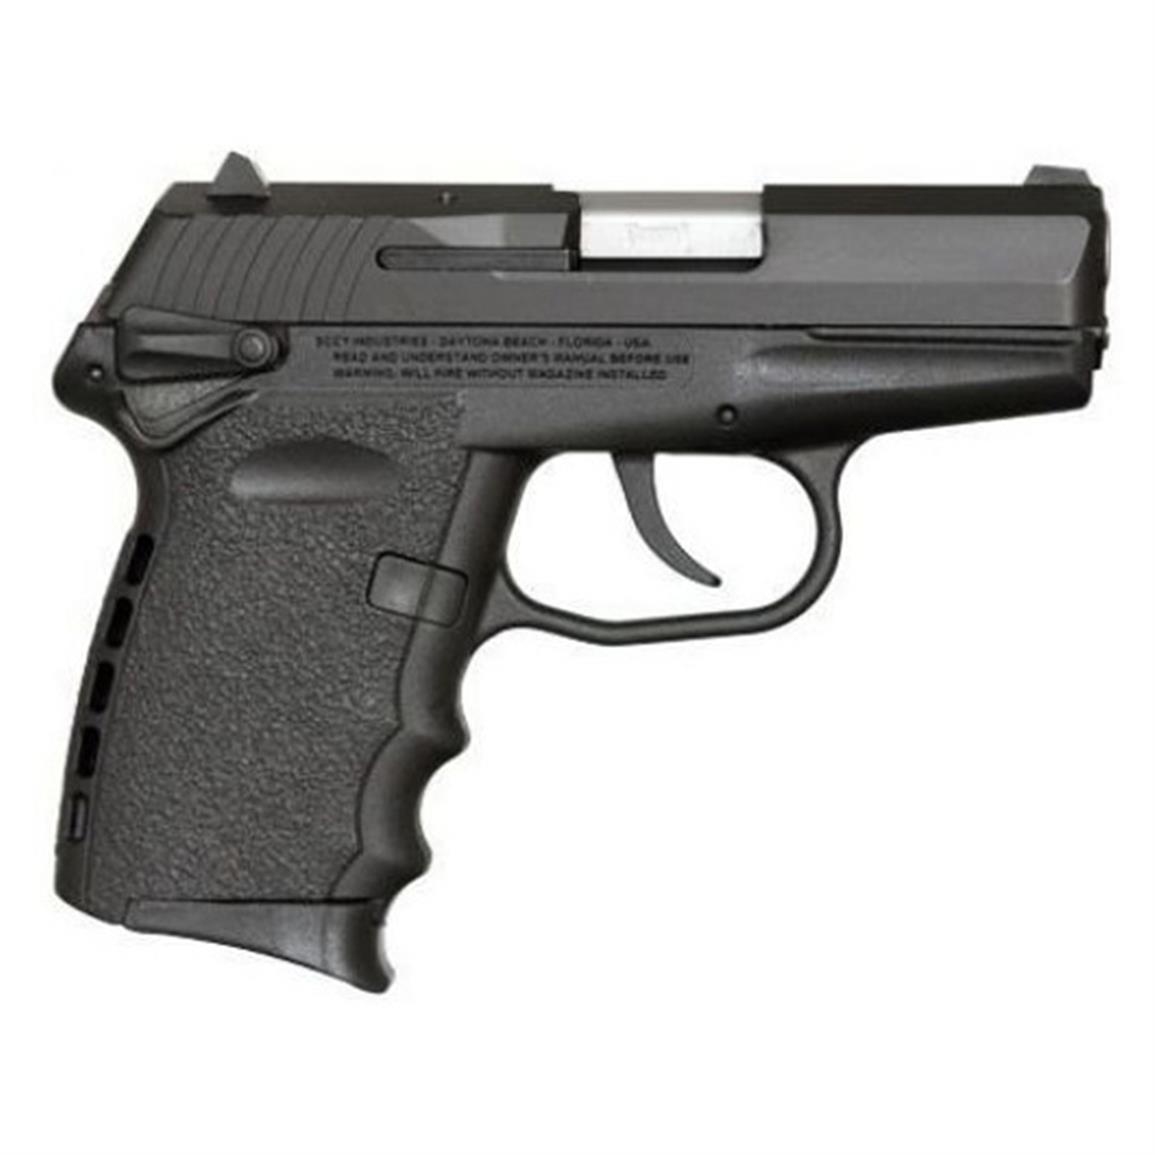 "SCCY CPX-1, Semi-automatic, 9mm, CPX1CB, 857679003005, 3.1"" Barrel, Black Nitride Finish"